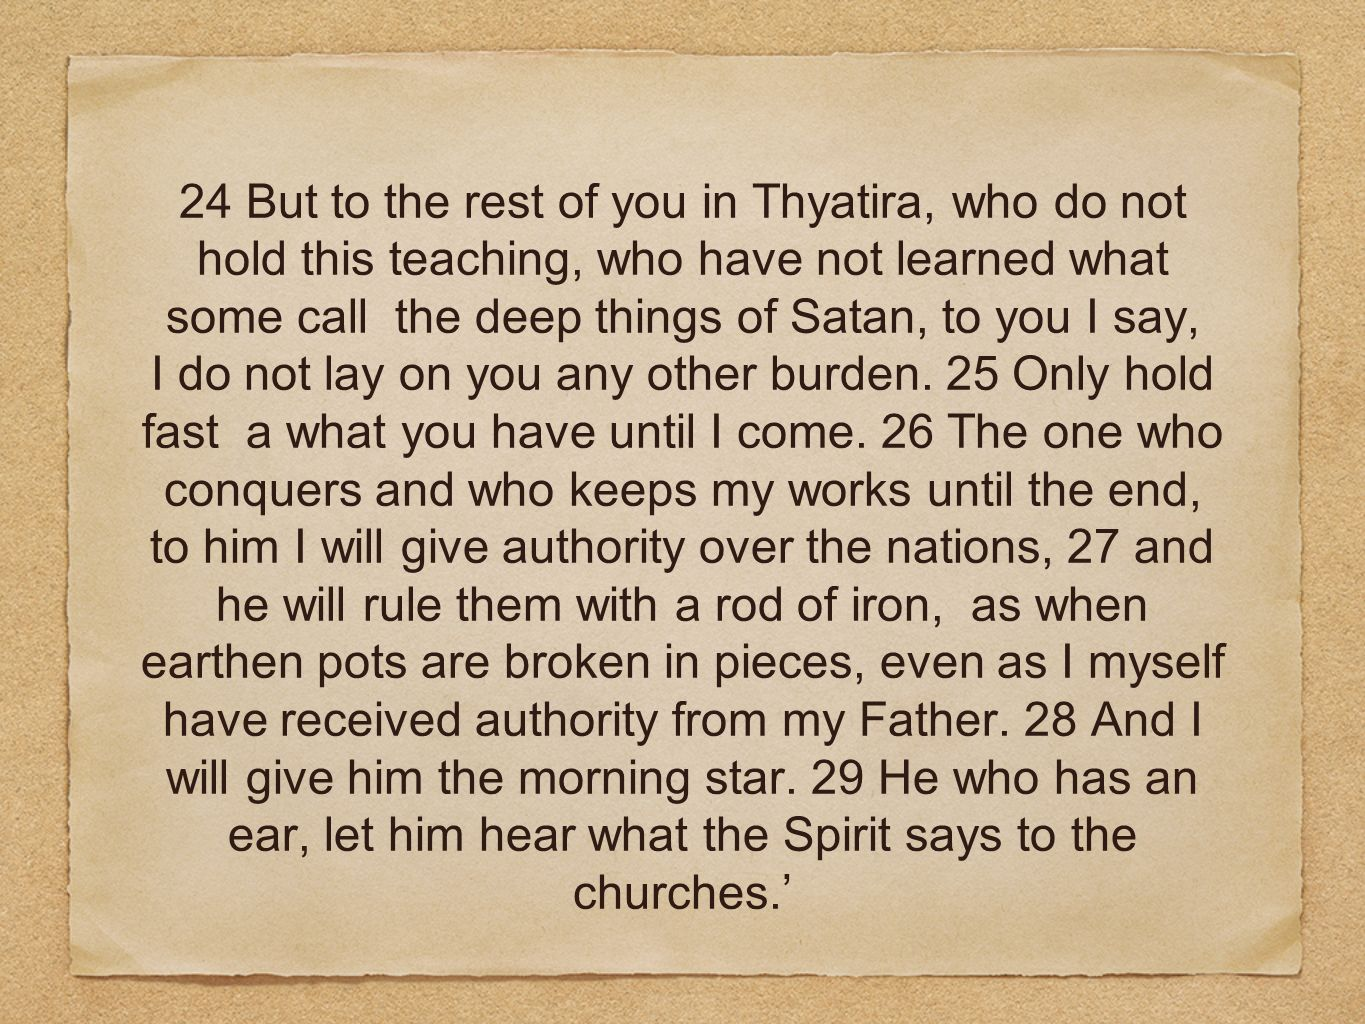 24 But to the rest of you in Thyatira, who do not hold this teaching, who have not learned what some call the deep things of Satan, to you I say, I do not lay on you any other burden.